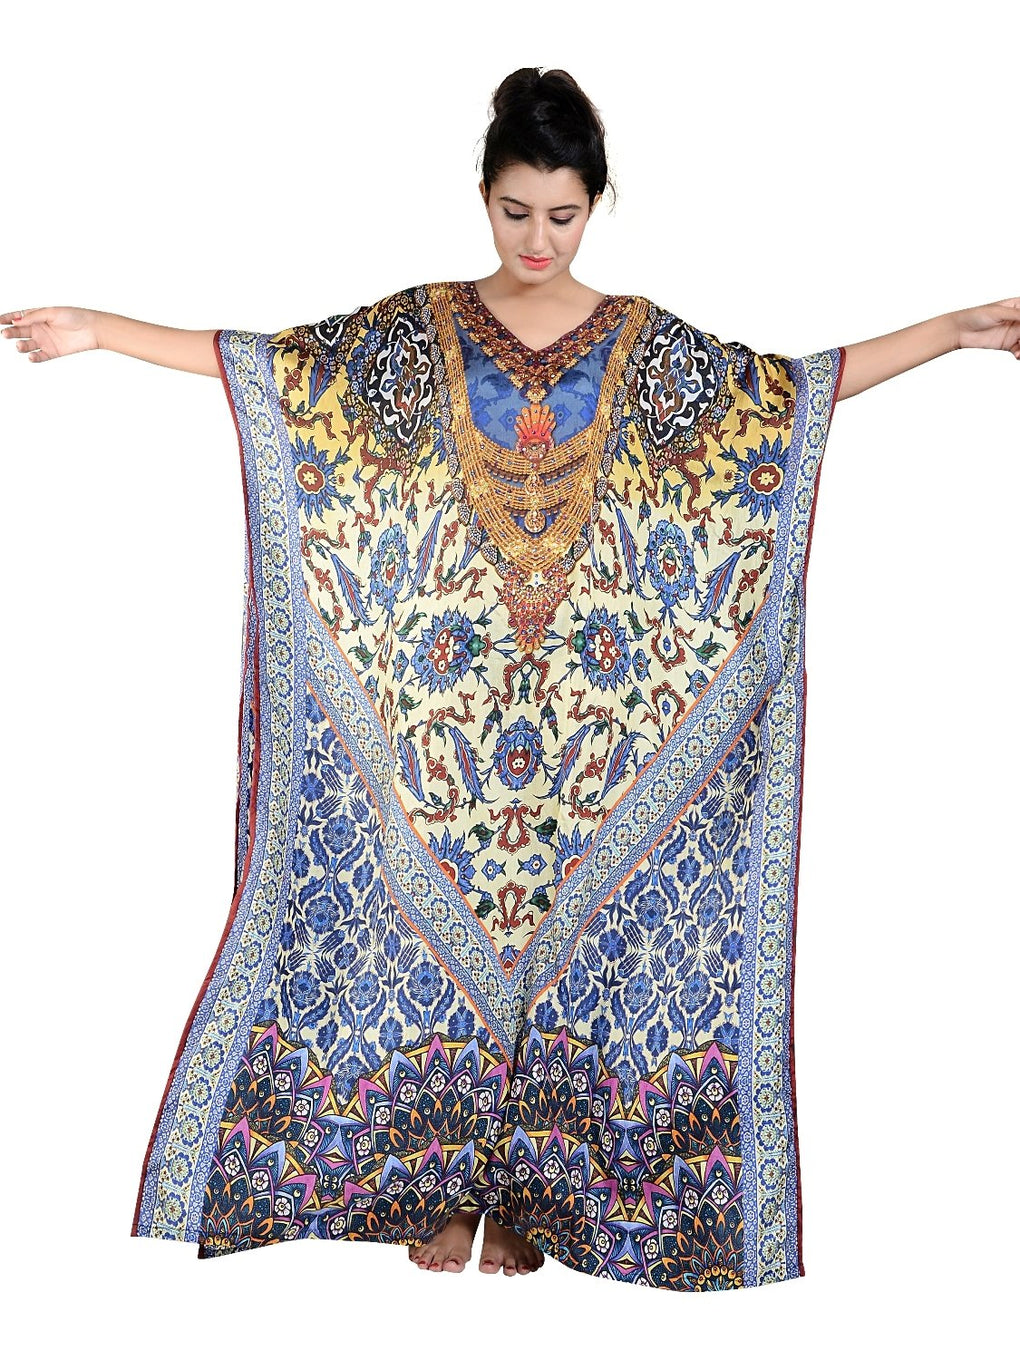 Heavily emblleshed maxi beach caftan long dressy/silk kaftan beach and resort wear hand made latest elegant kaftan fashion plus woman 67 - Silk kaftan